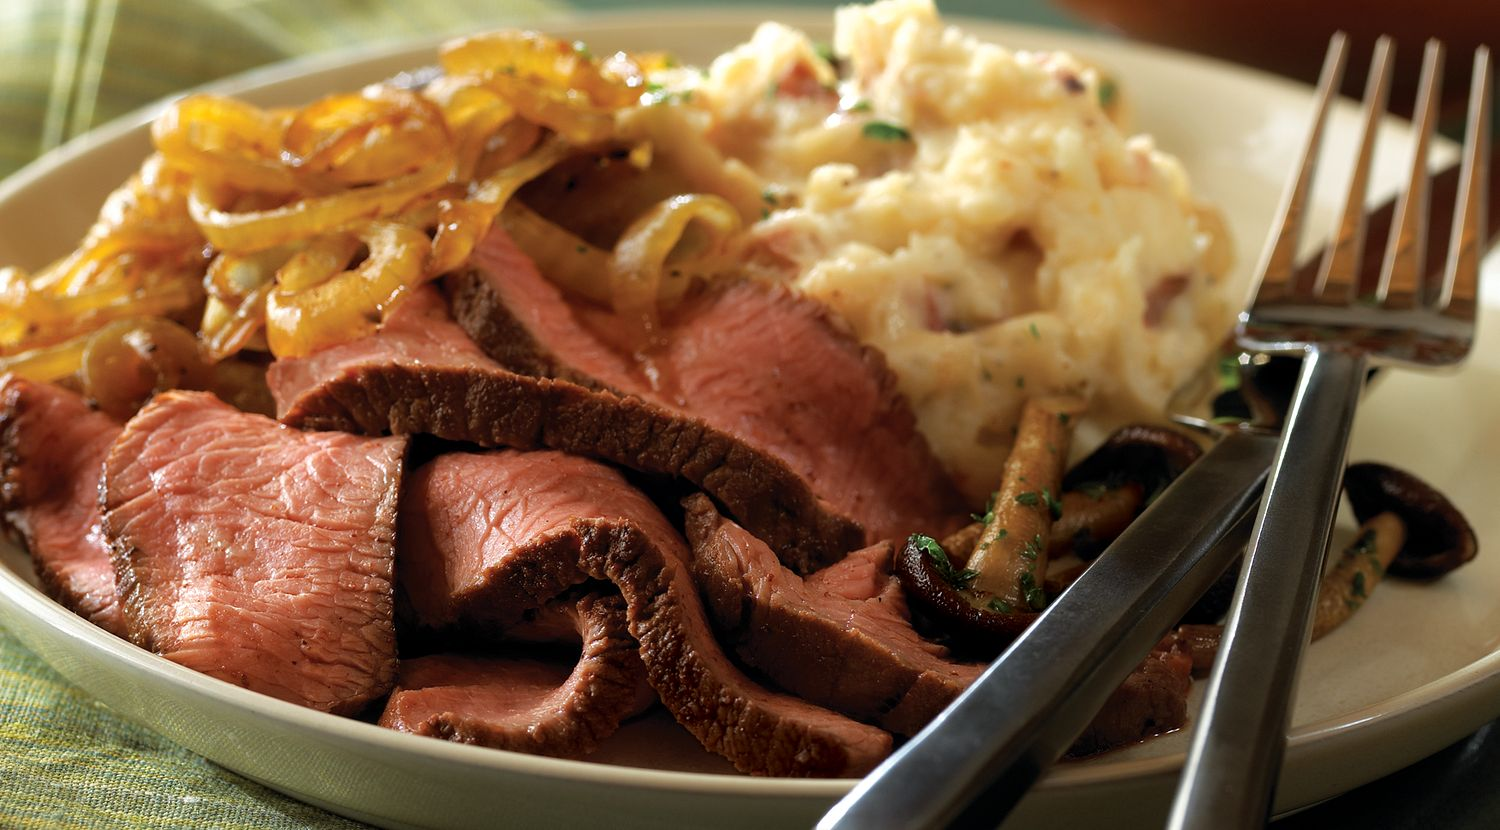 Spicy-Sweet Steaks and Onions